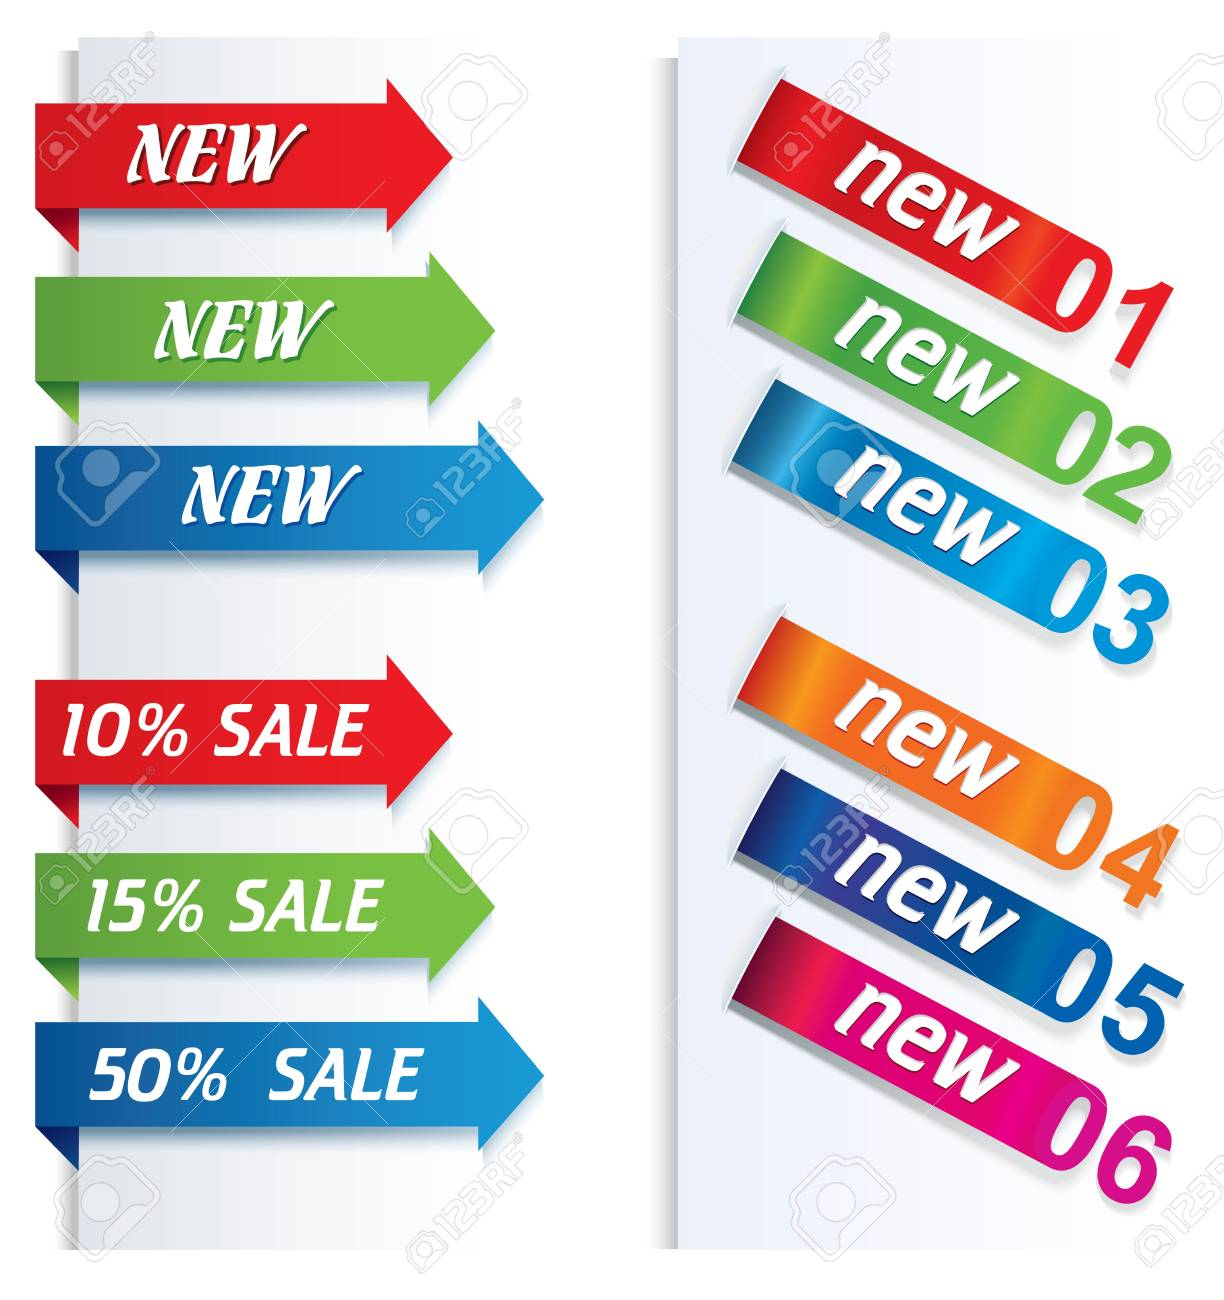 Colorful arrows and labels. Stock Vector - 16873101